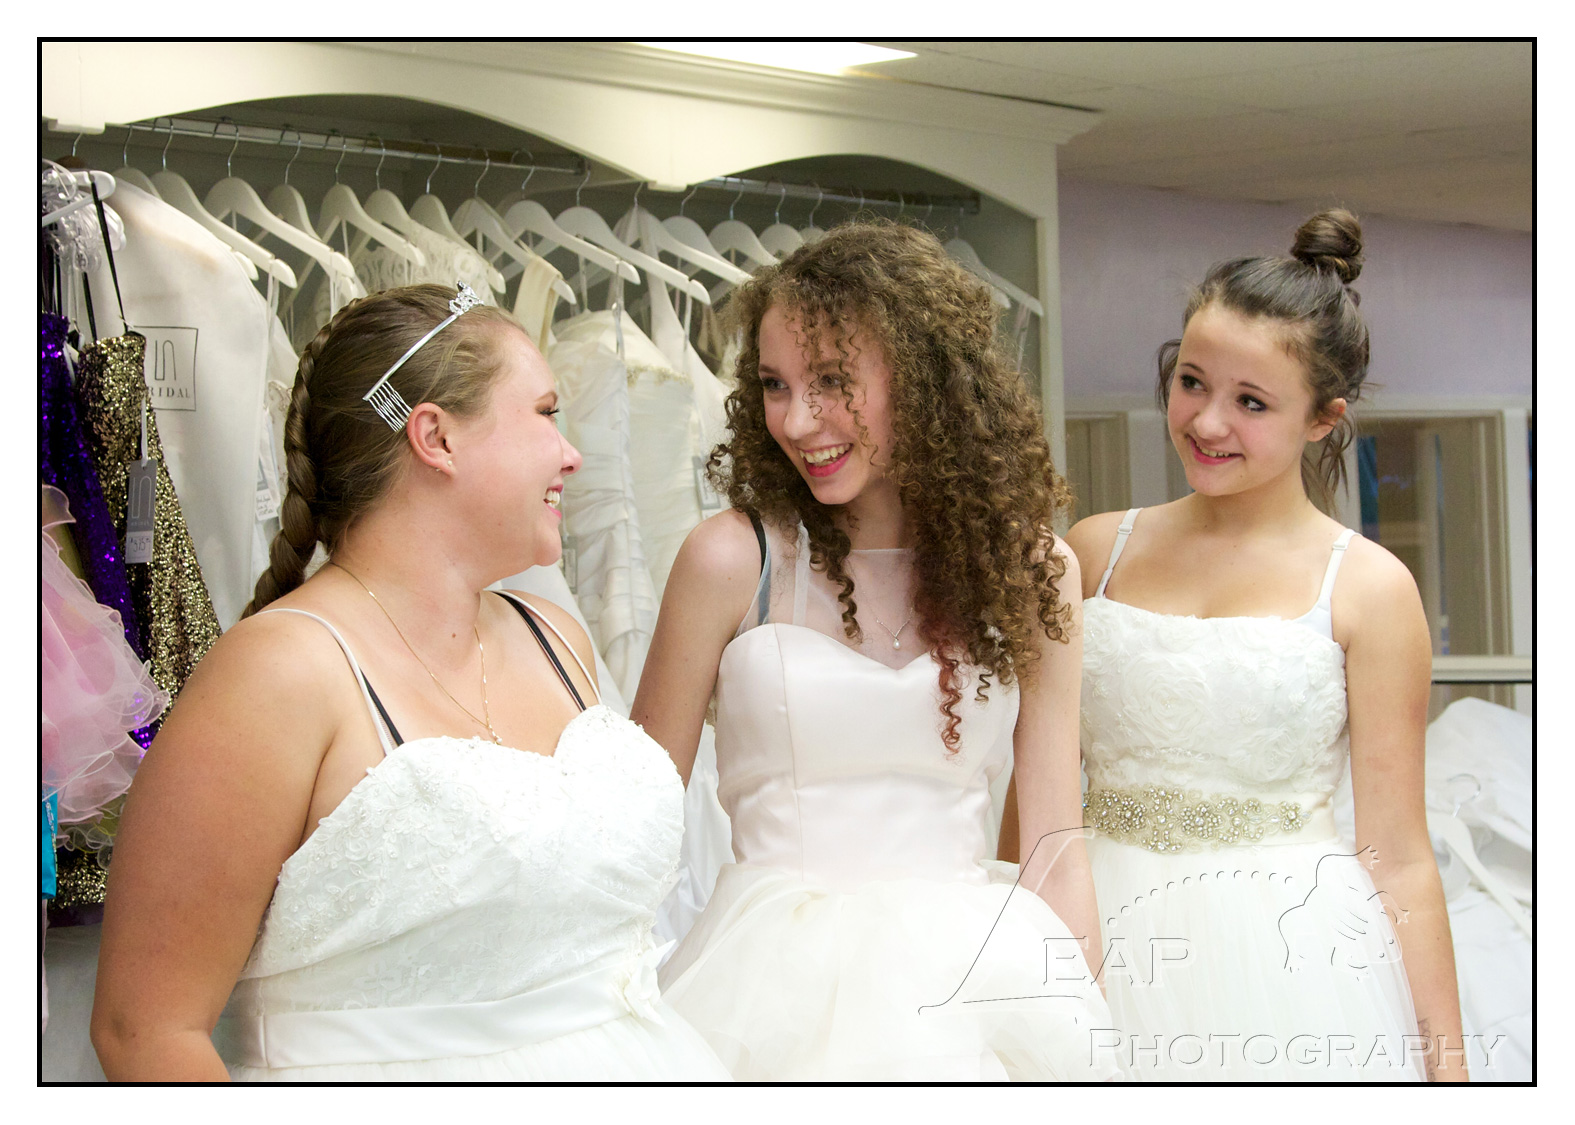 3 sisters in bridal gowns